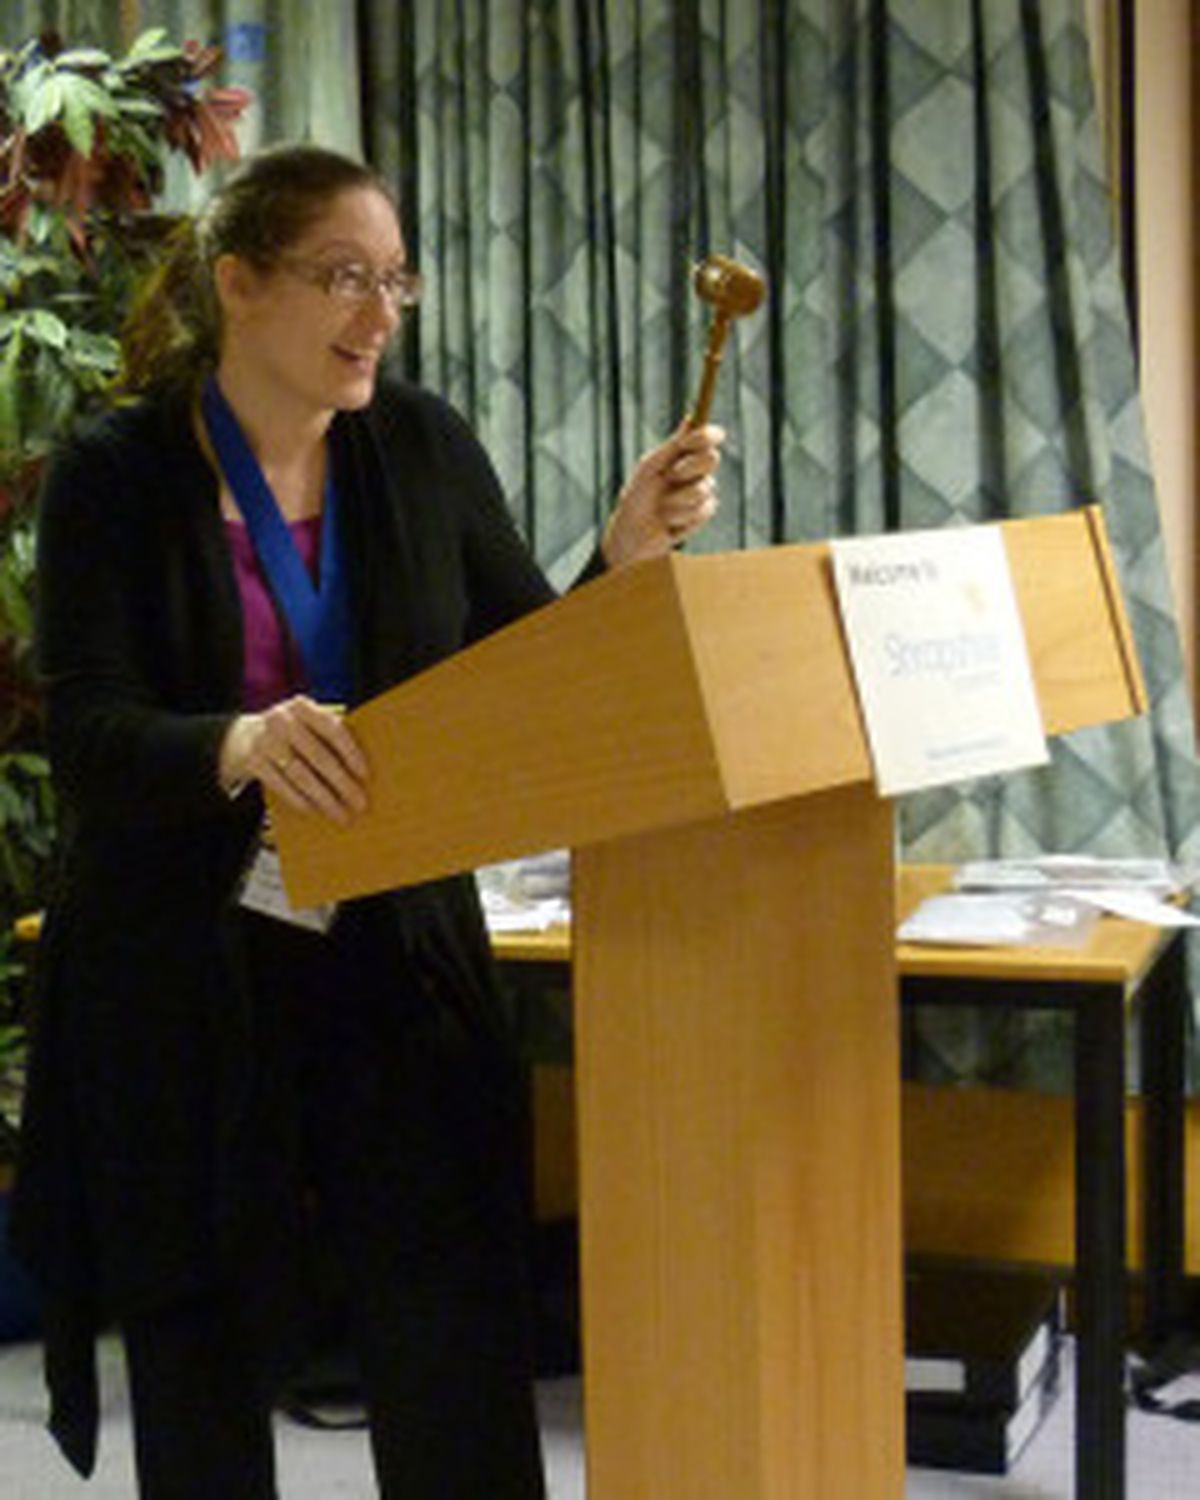 Sam Warner wields the gavel at a meeting of Shropshire Speakers – Picture by Jim Hawkins